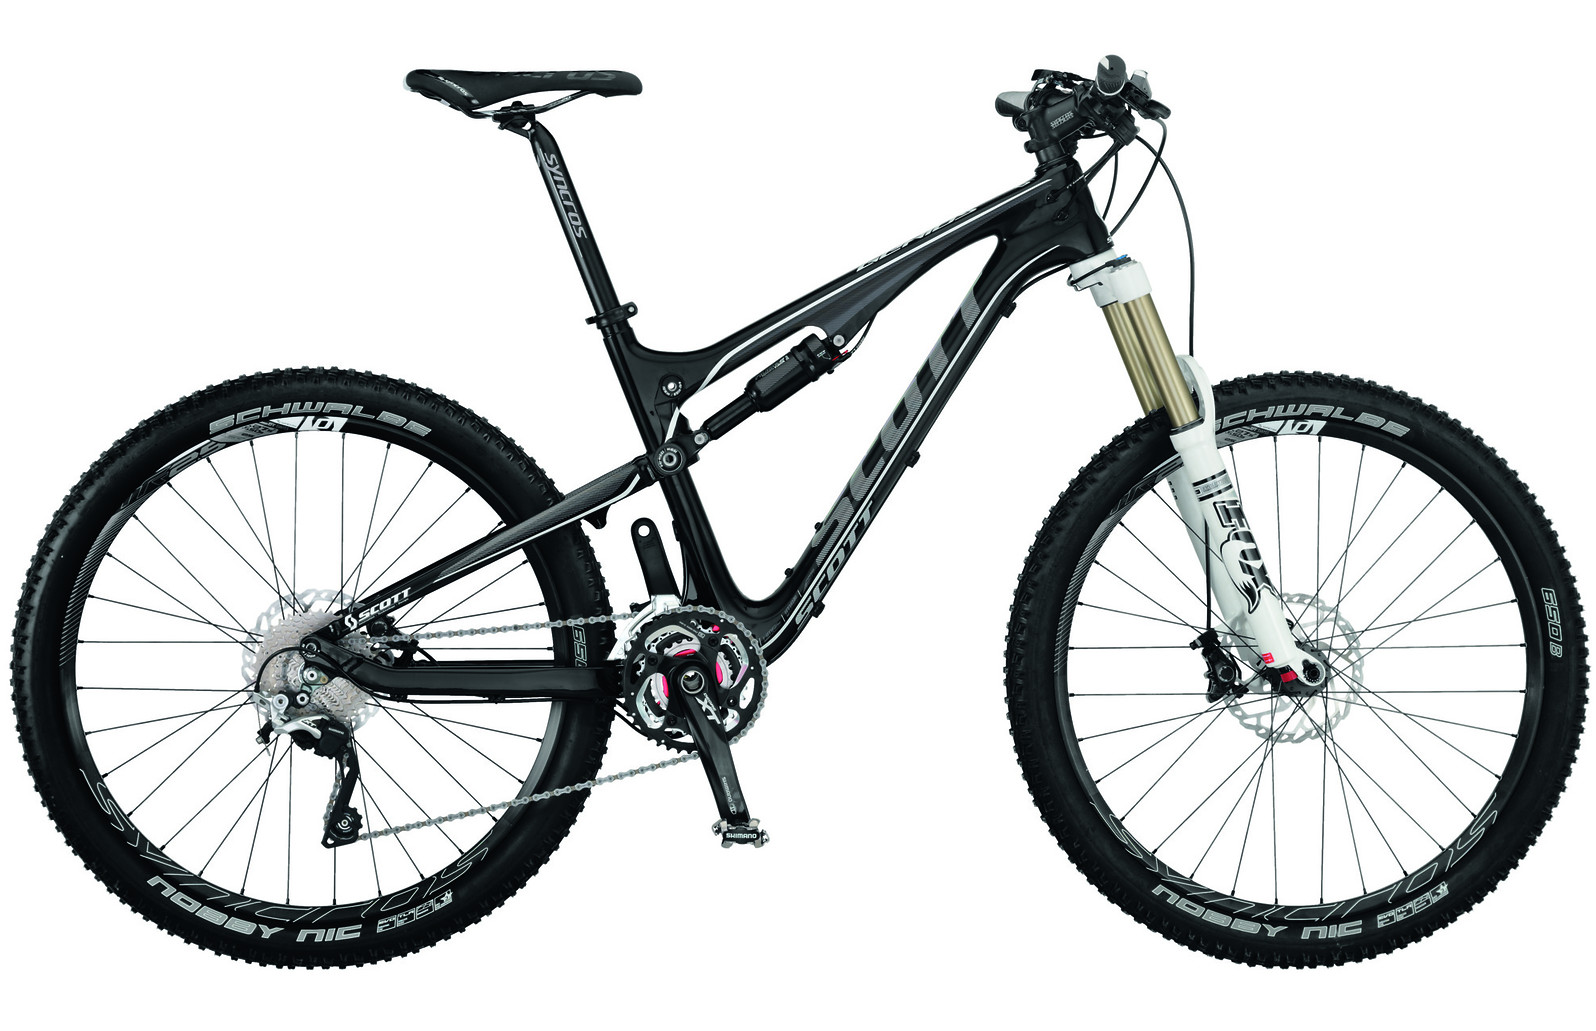 2013 Scott Genius 720 - Reviews, Comparisons, Specs - Mountain Bikes